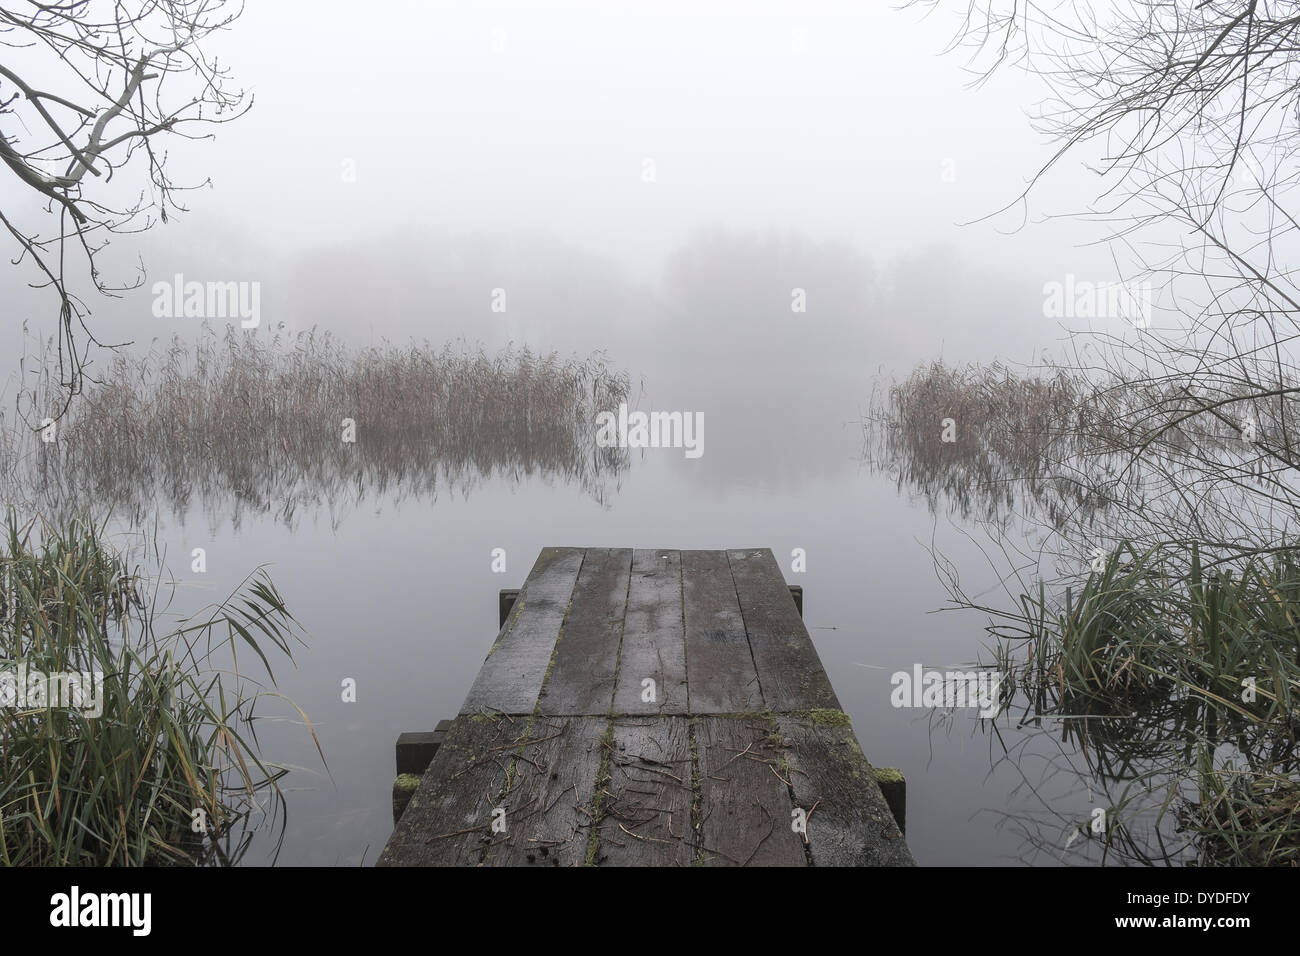 A wooden jetty on the Unversity of East Anglia broad on a misty morning. - Stock Image